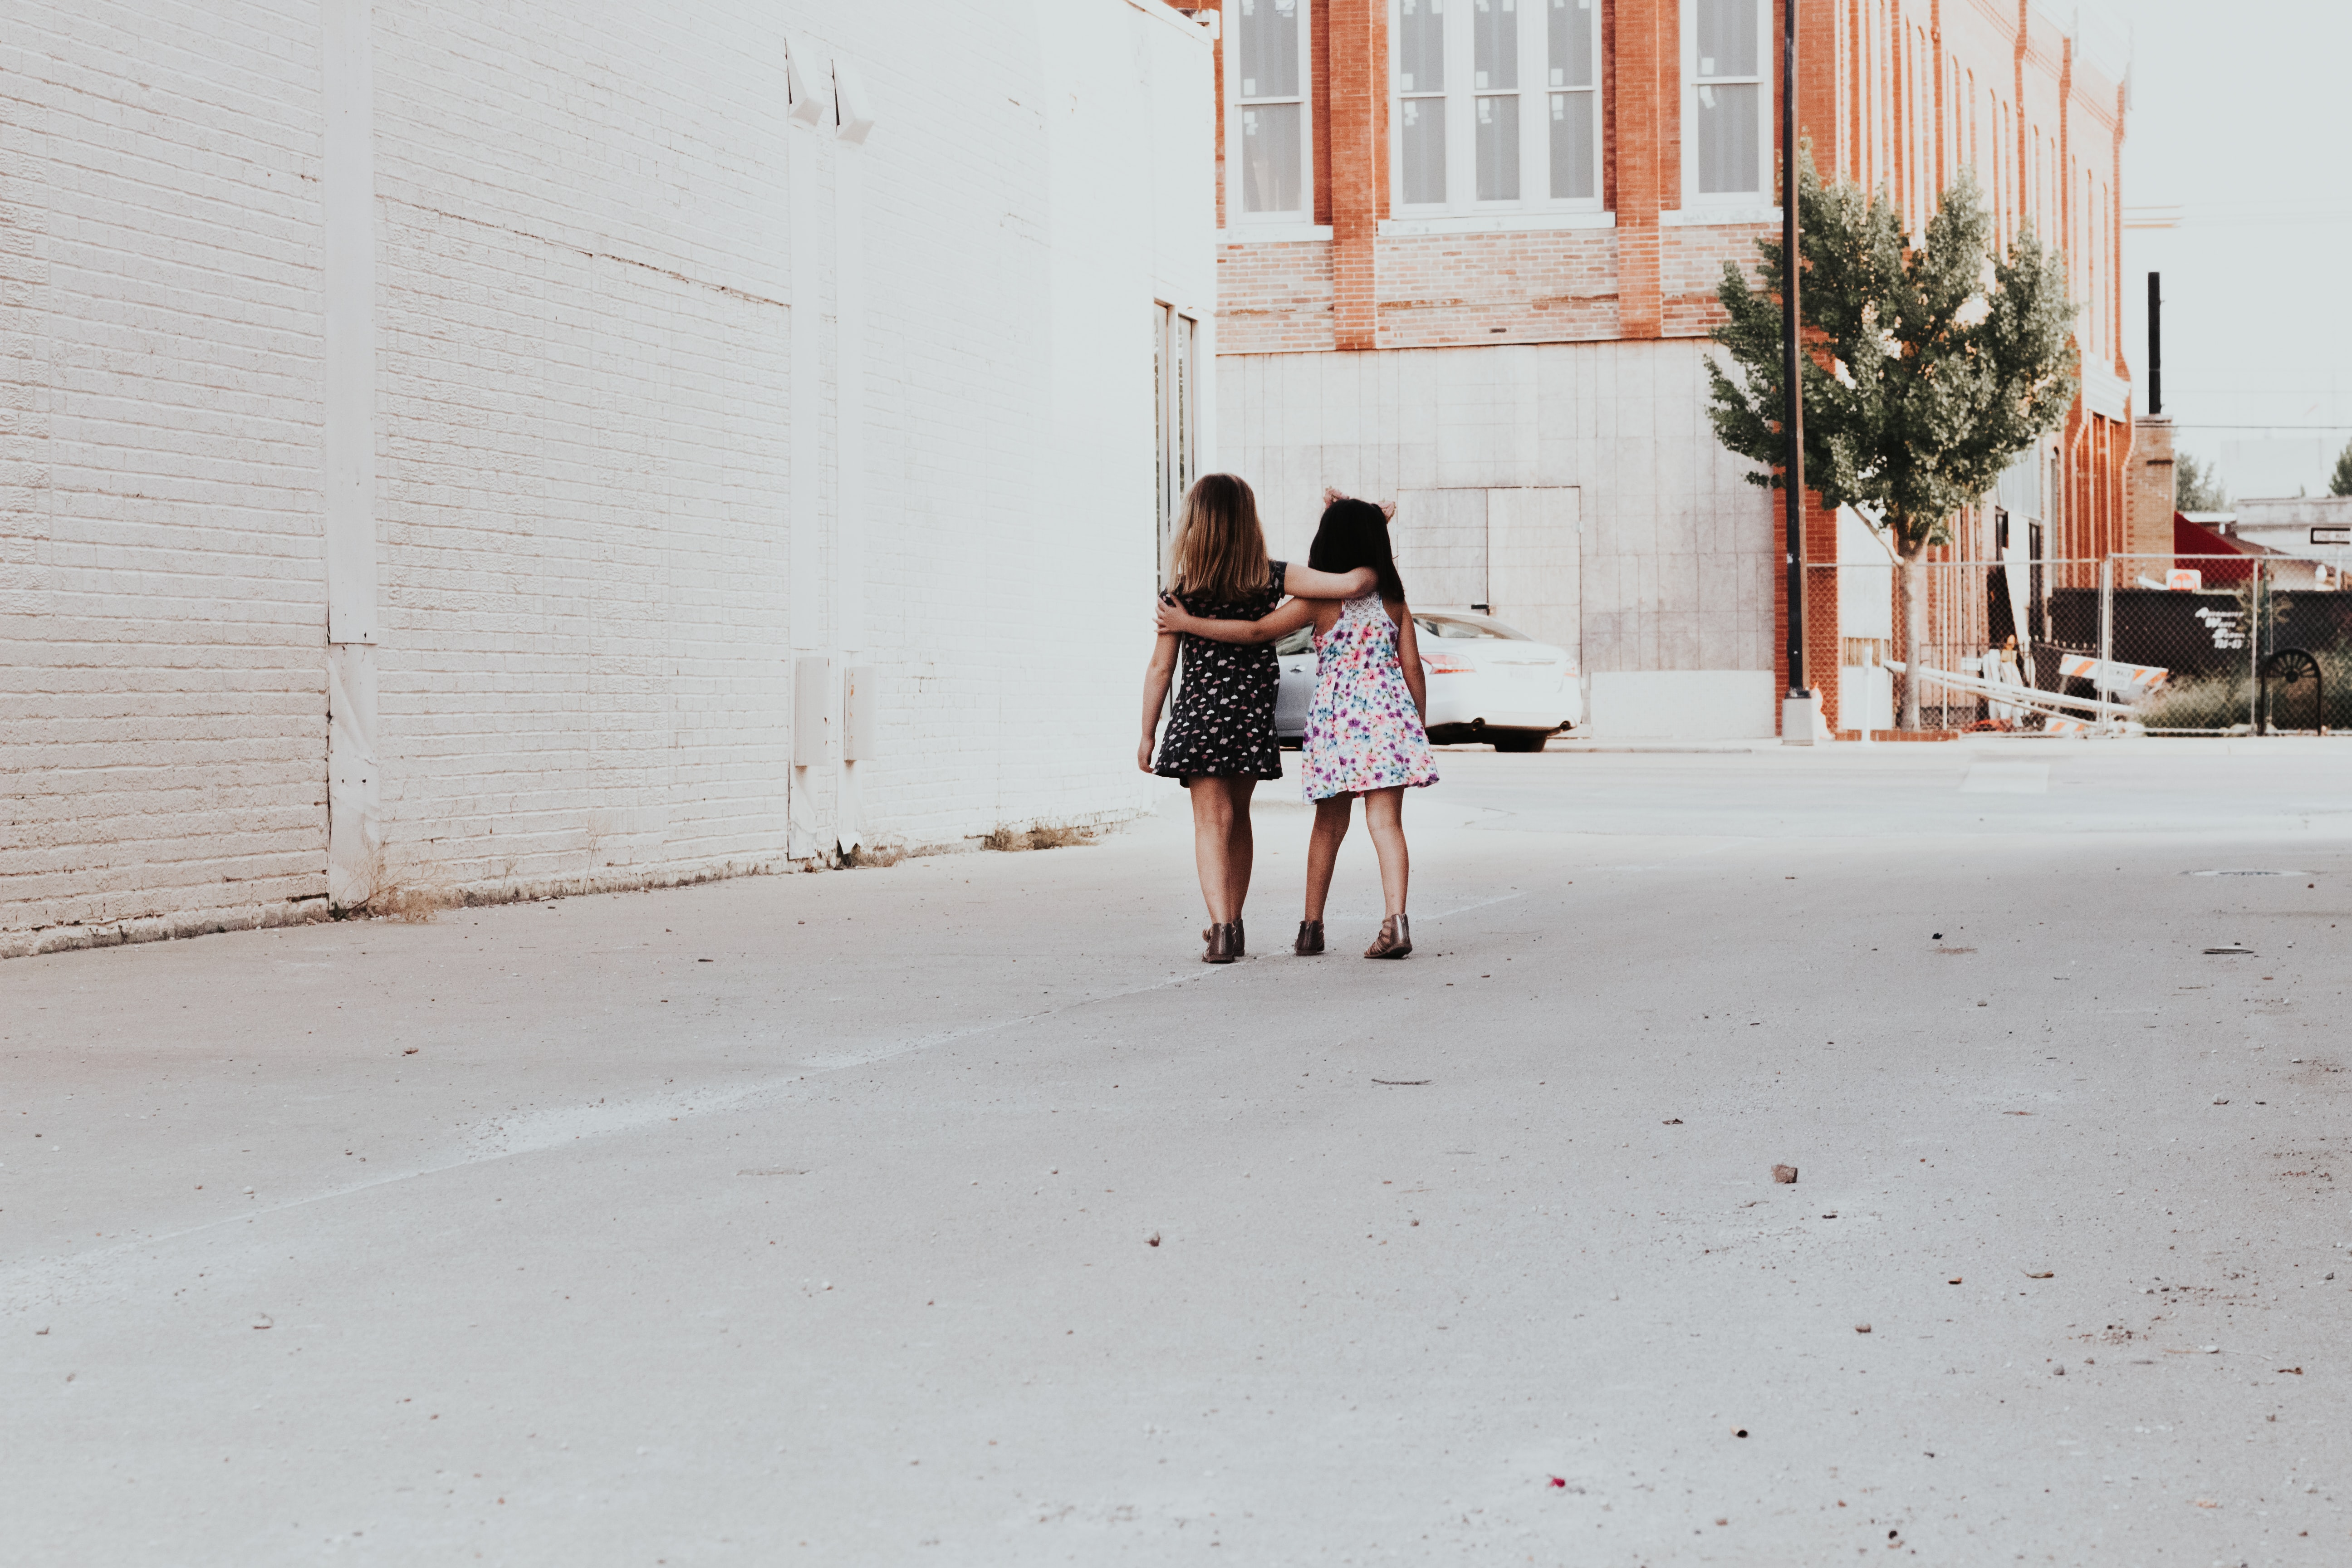 two girls walking on street